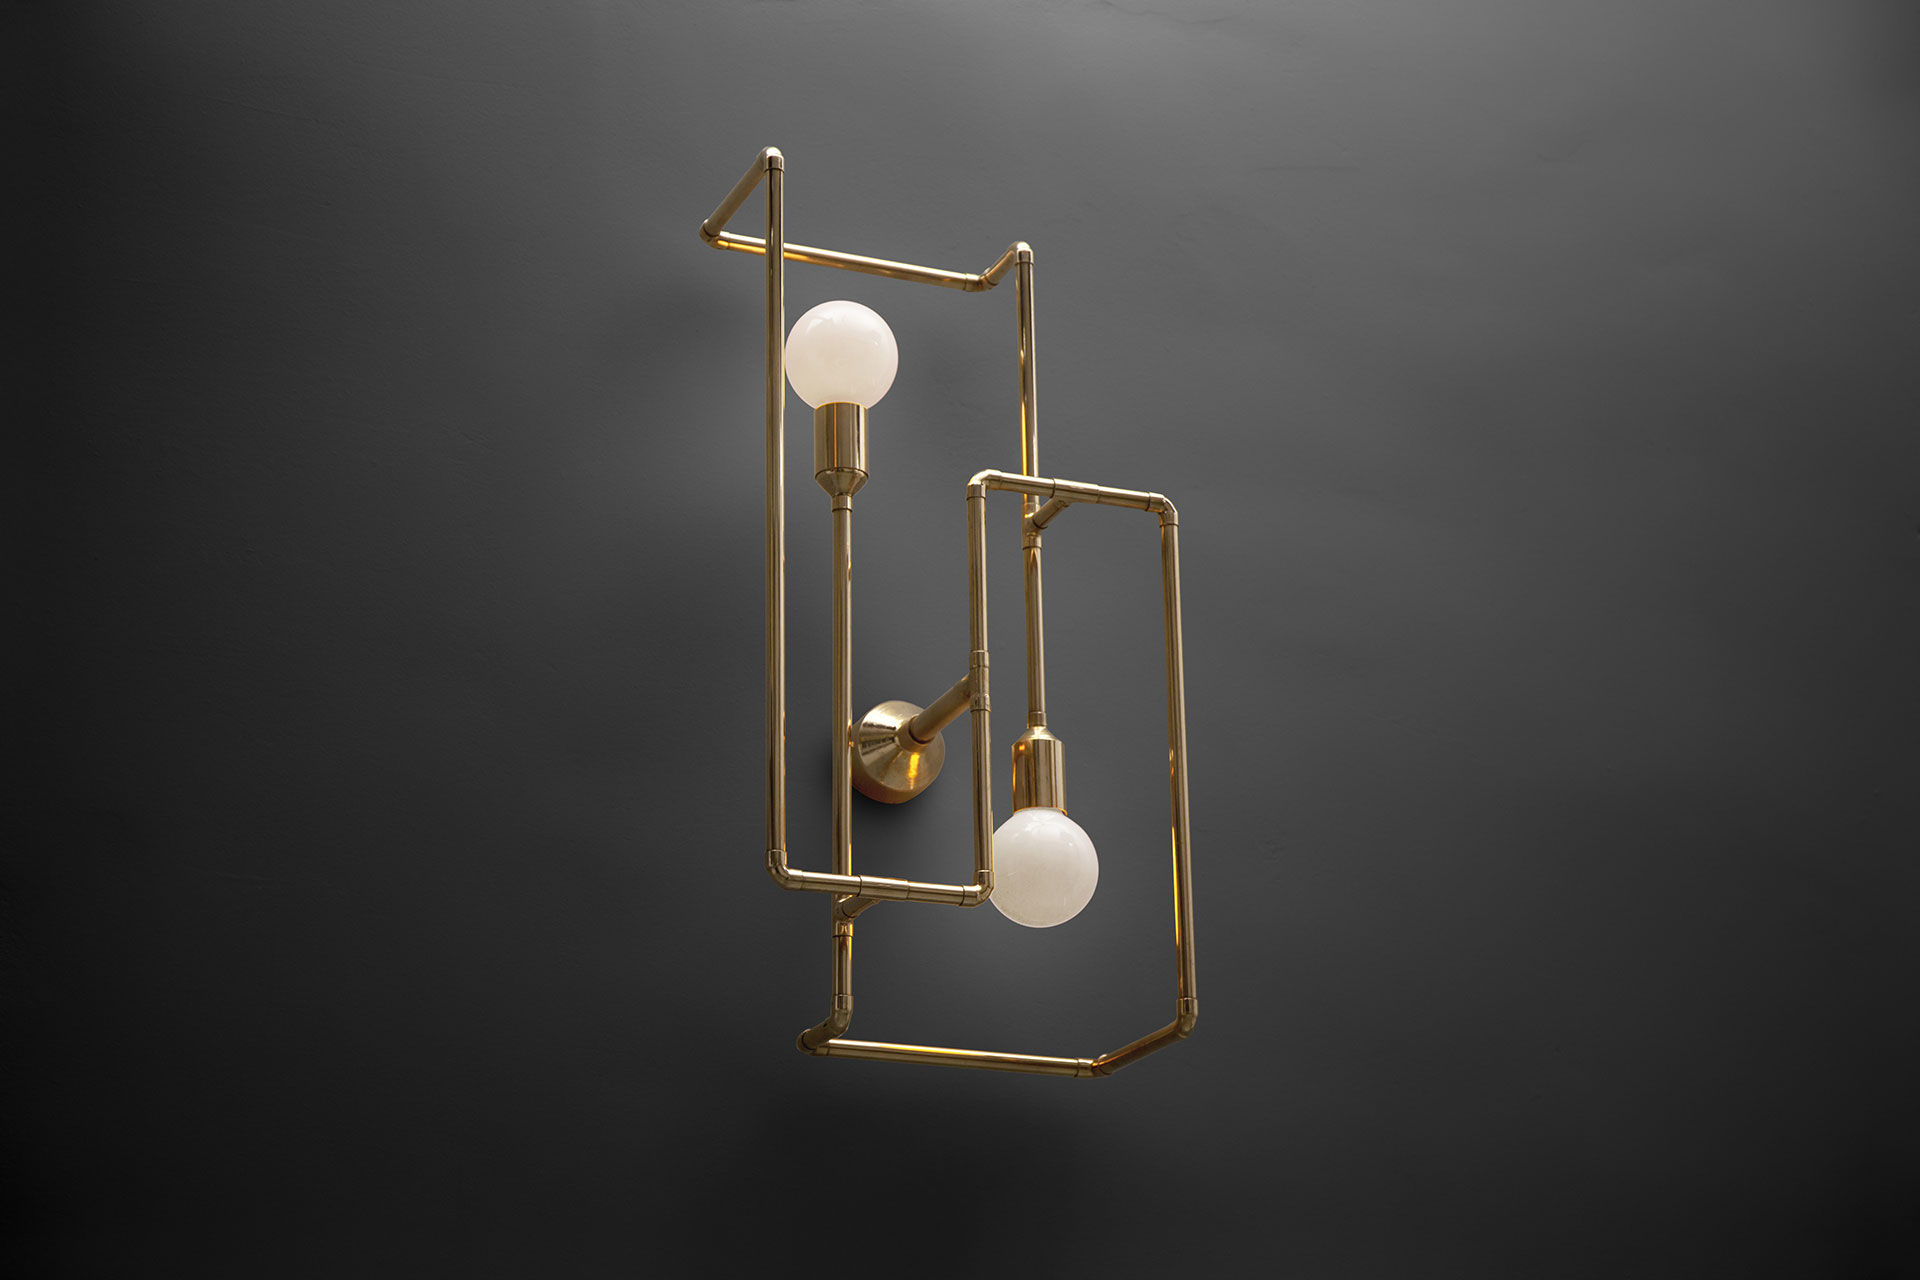 Conceptual art wall lamp sculpture in copper or brass